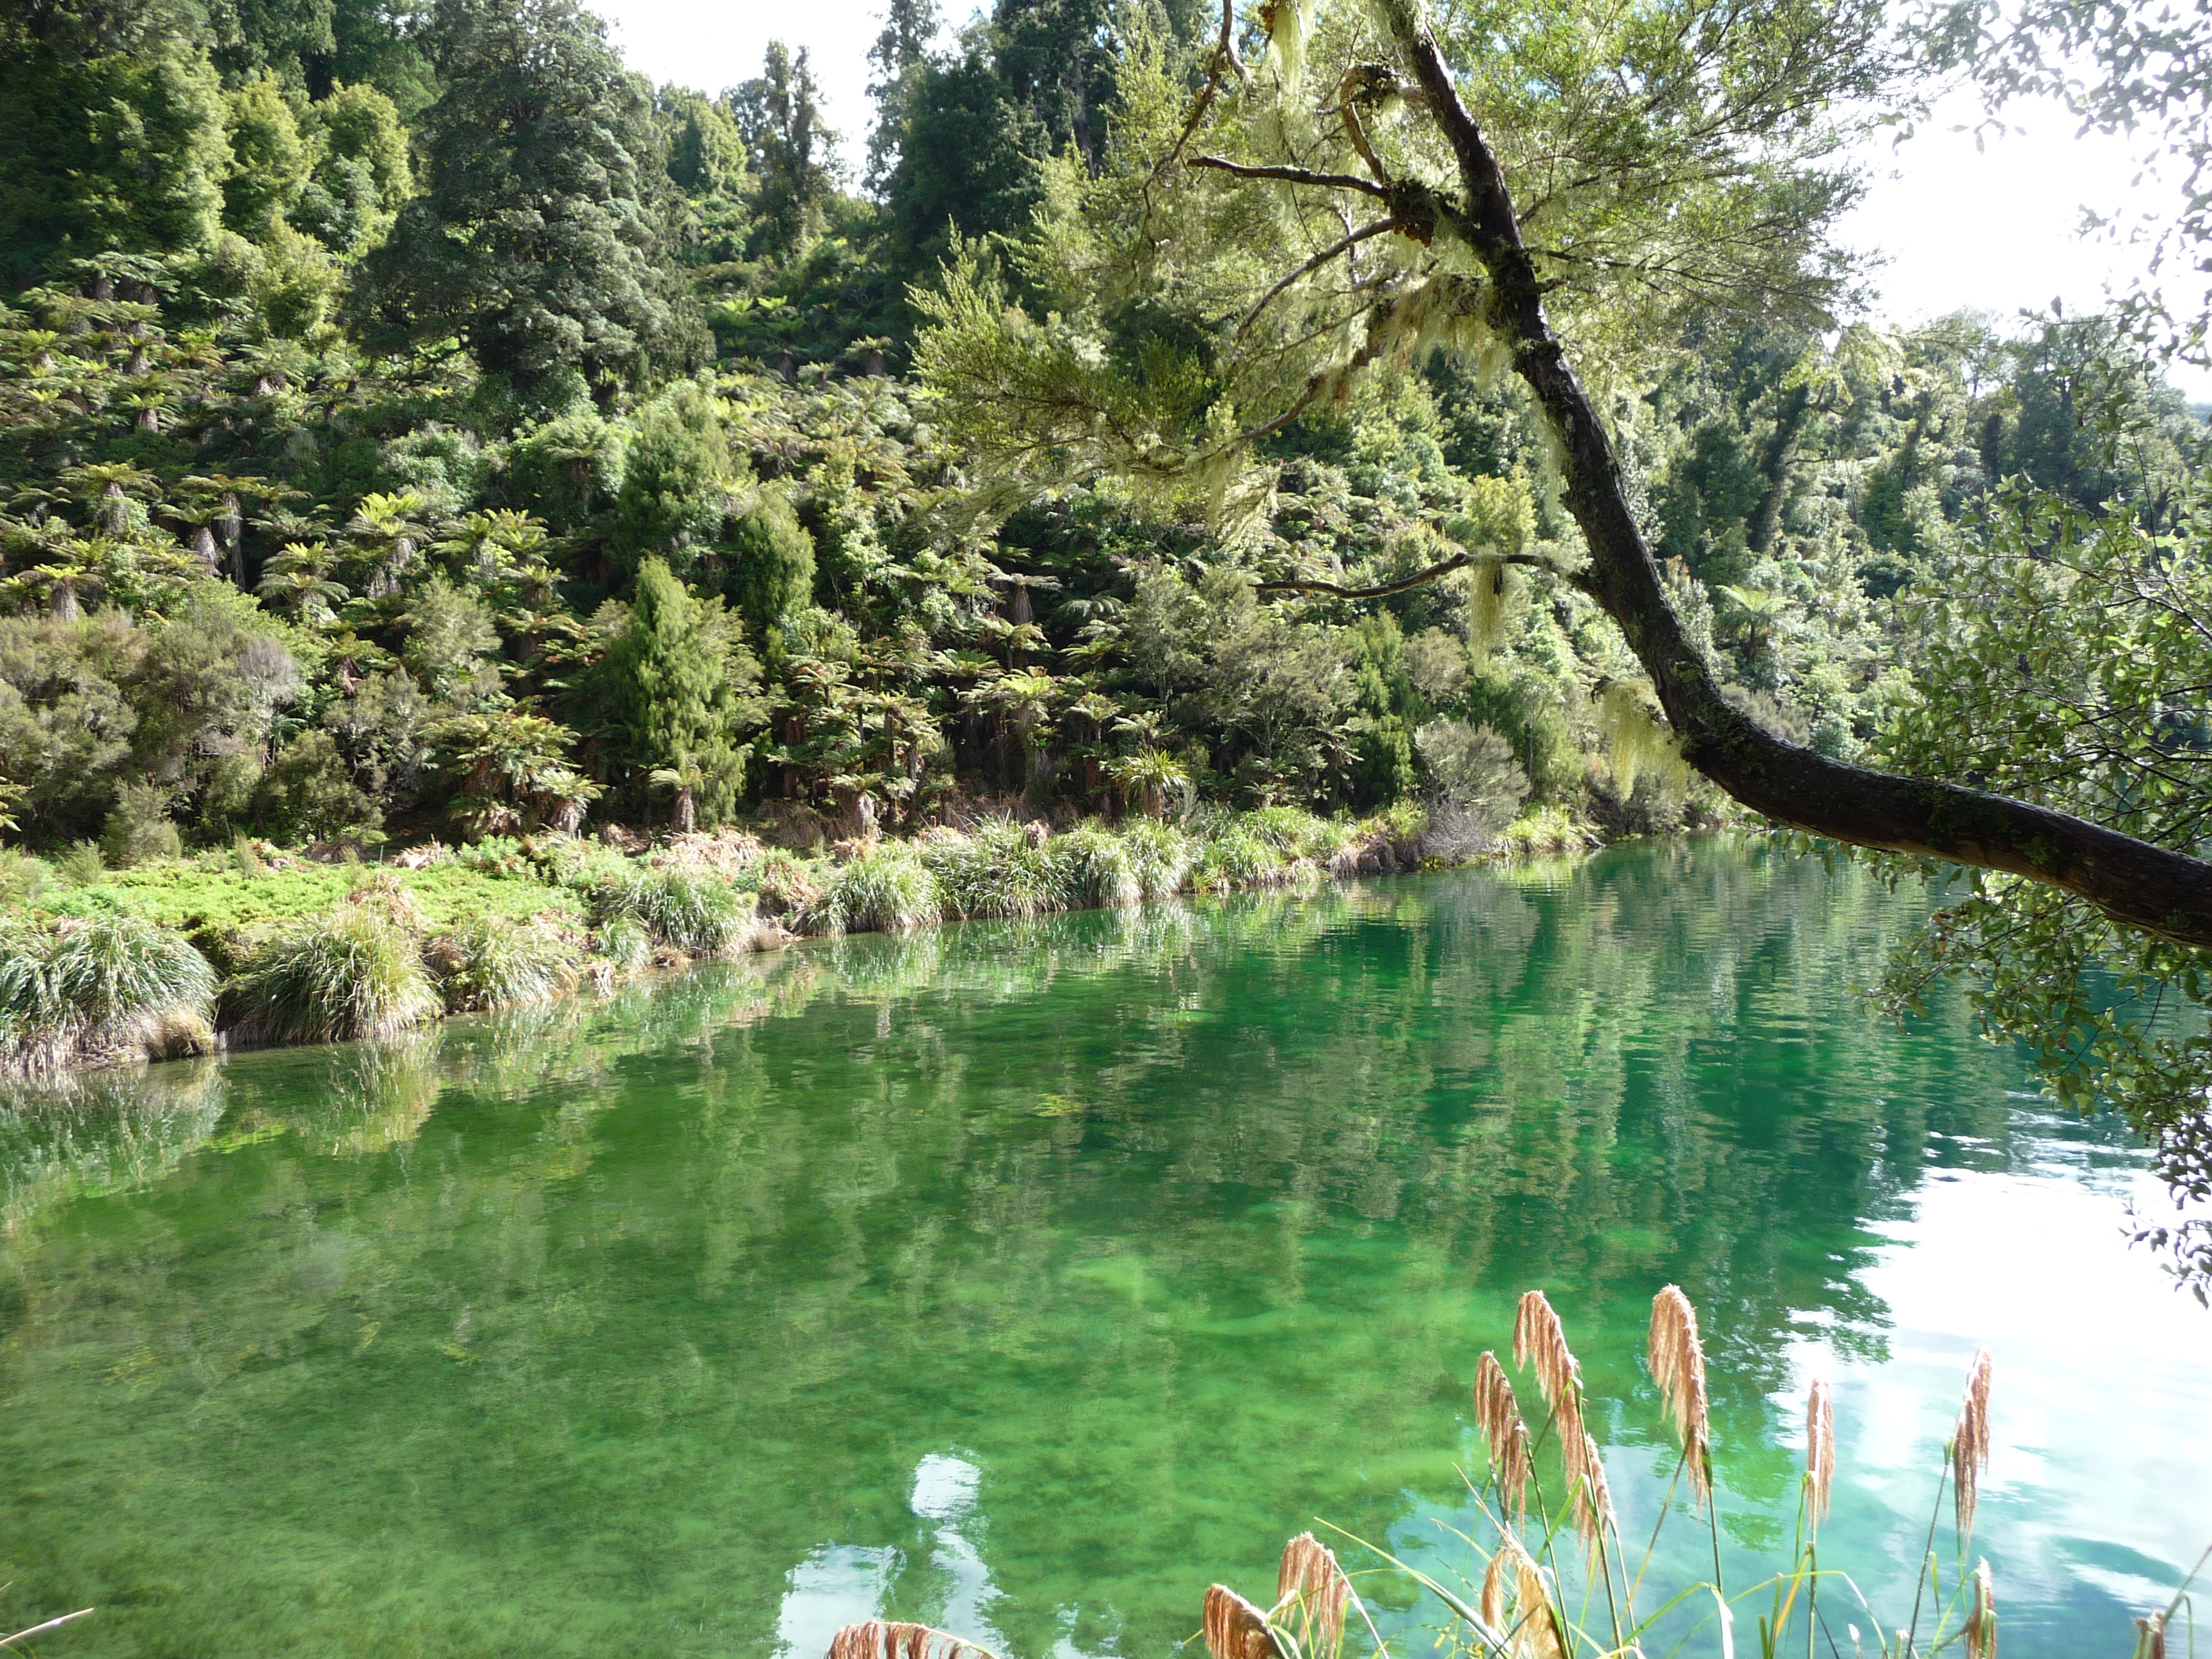 Lake Waikaremoana Great Walk – The Wandering Historian